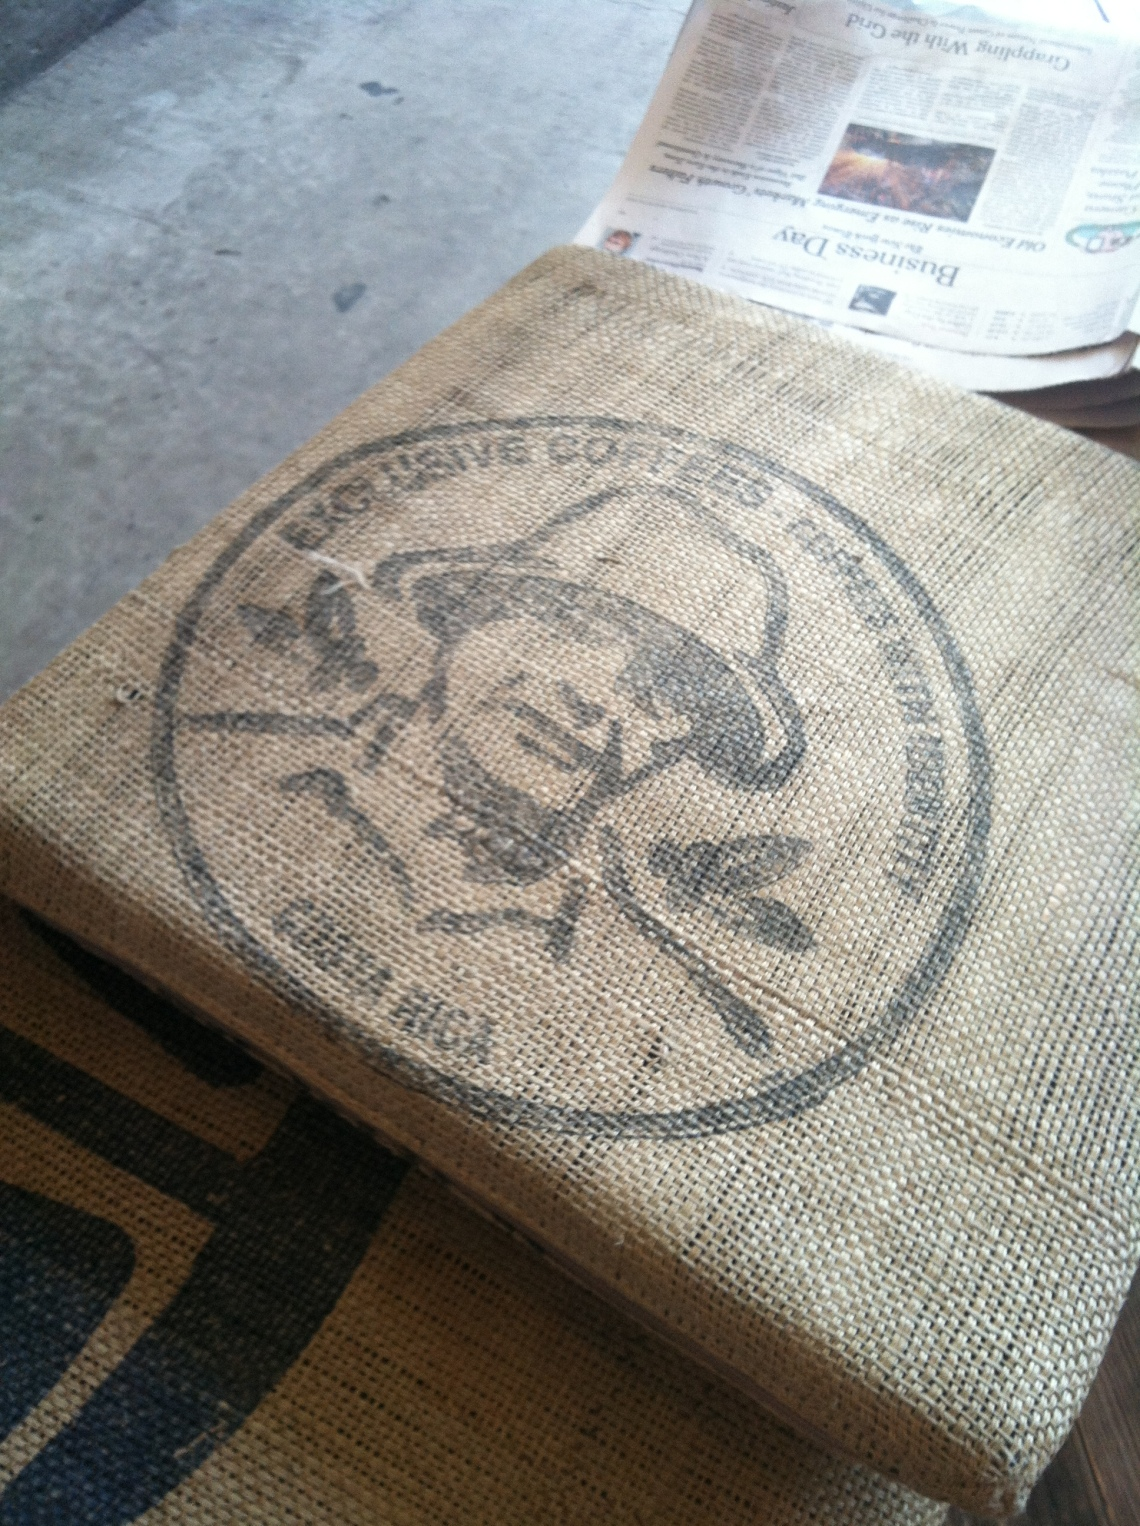 Sack from Exclusive Coffee of Costa Rica